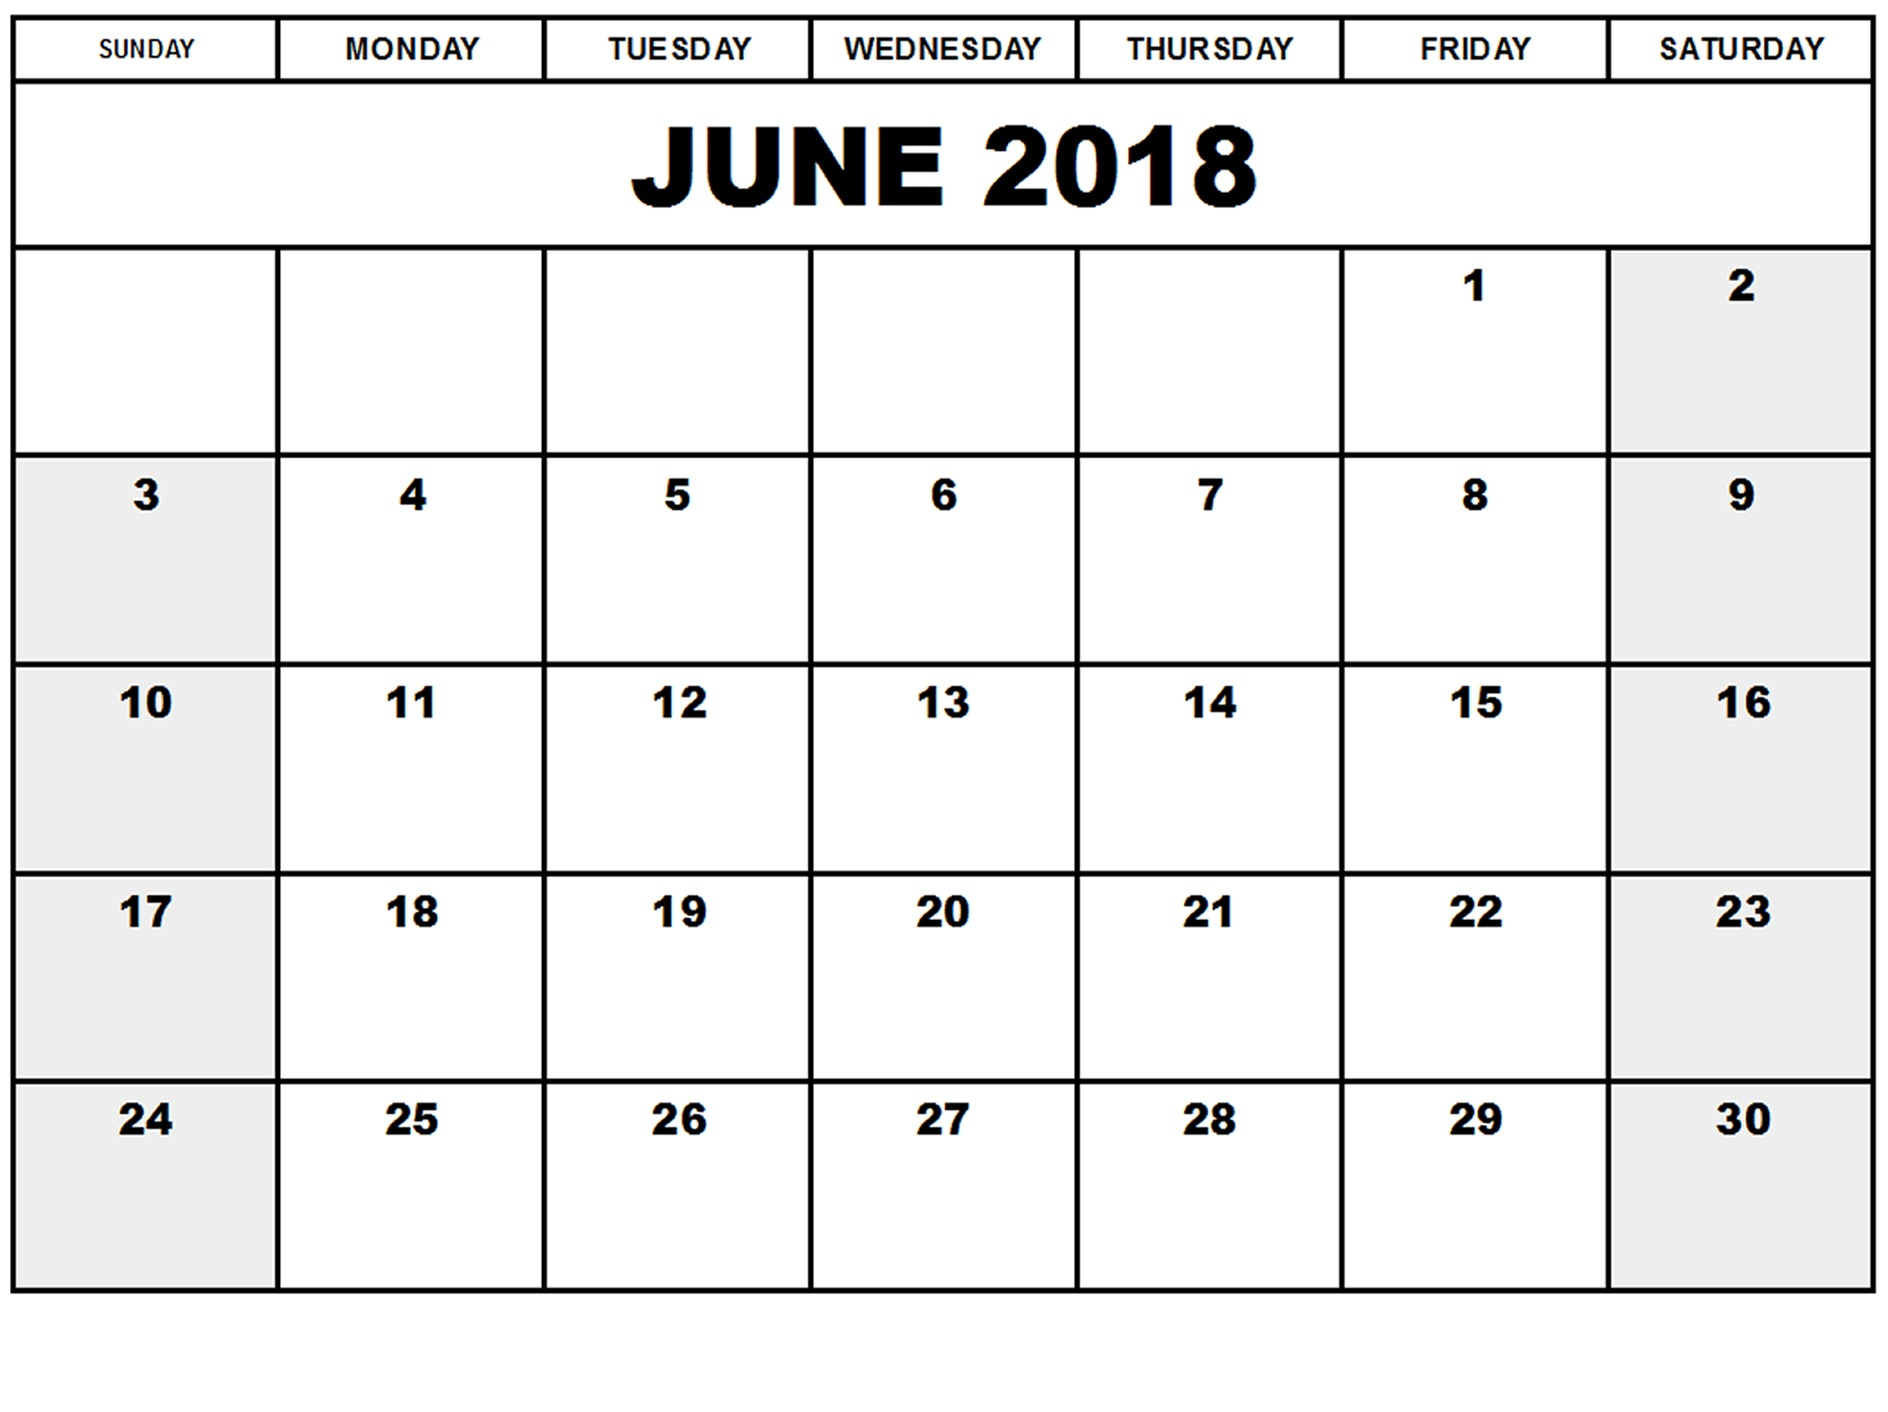 June 2018 Calendar Template Printable Format